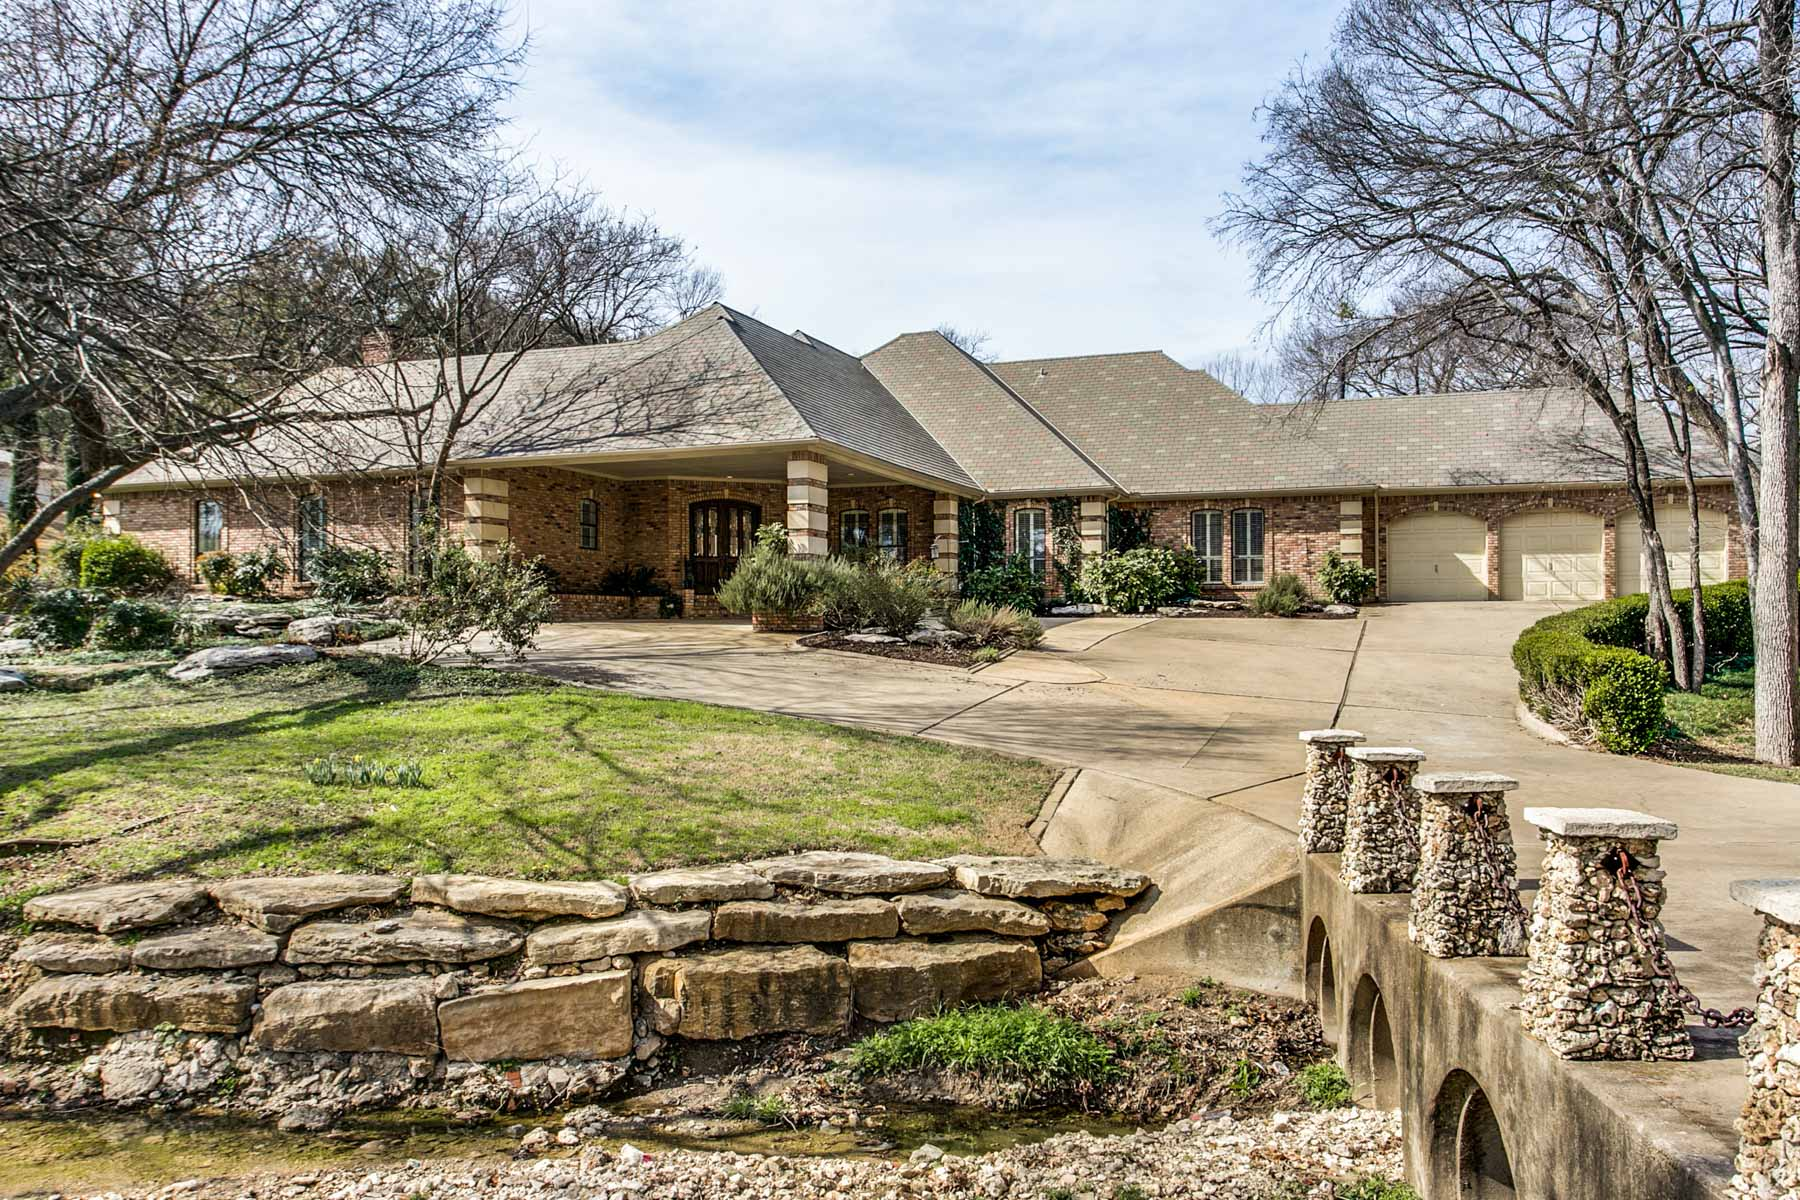 Single Family Home for Sale at 4024 Edgehill Rd, Fort Worth Fort Worth, Texas, 76116 United States